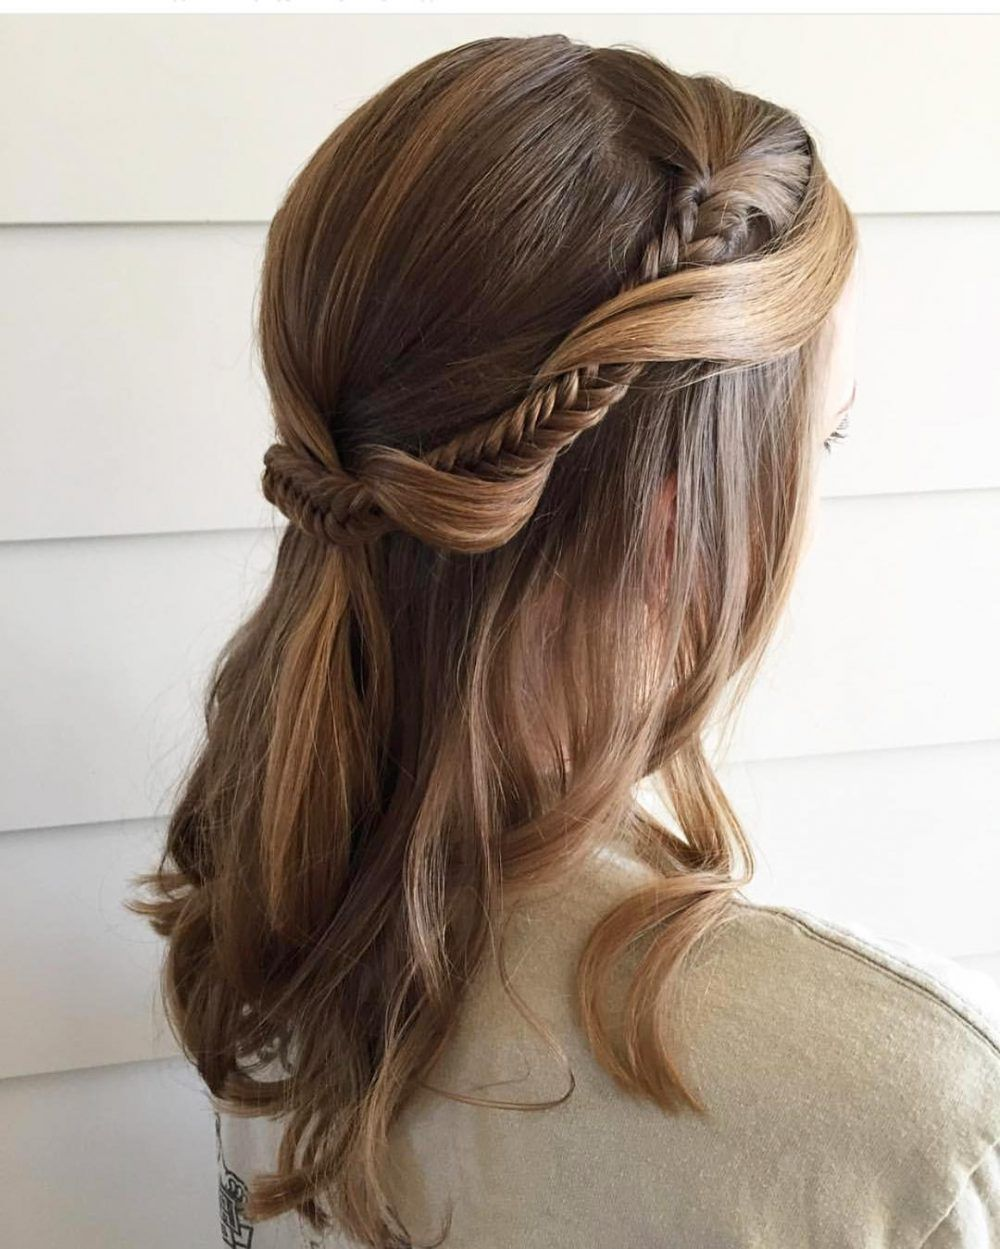 21 Super Easy Updos for Beginners to Try in 2020 in 2020 ...